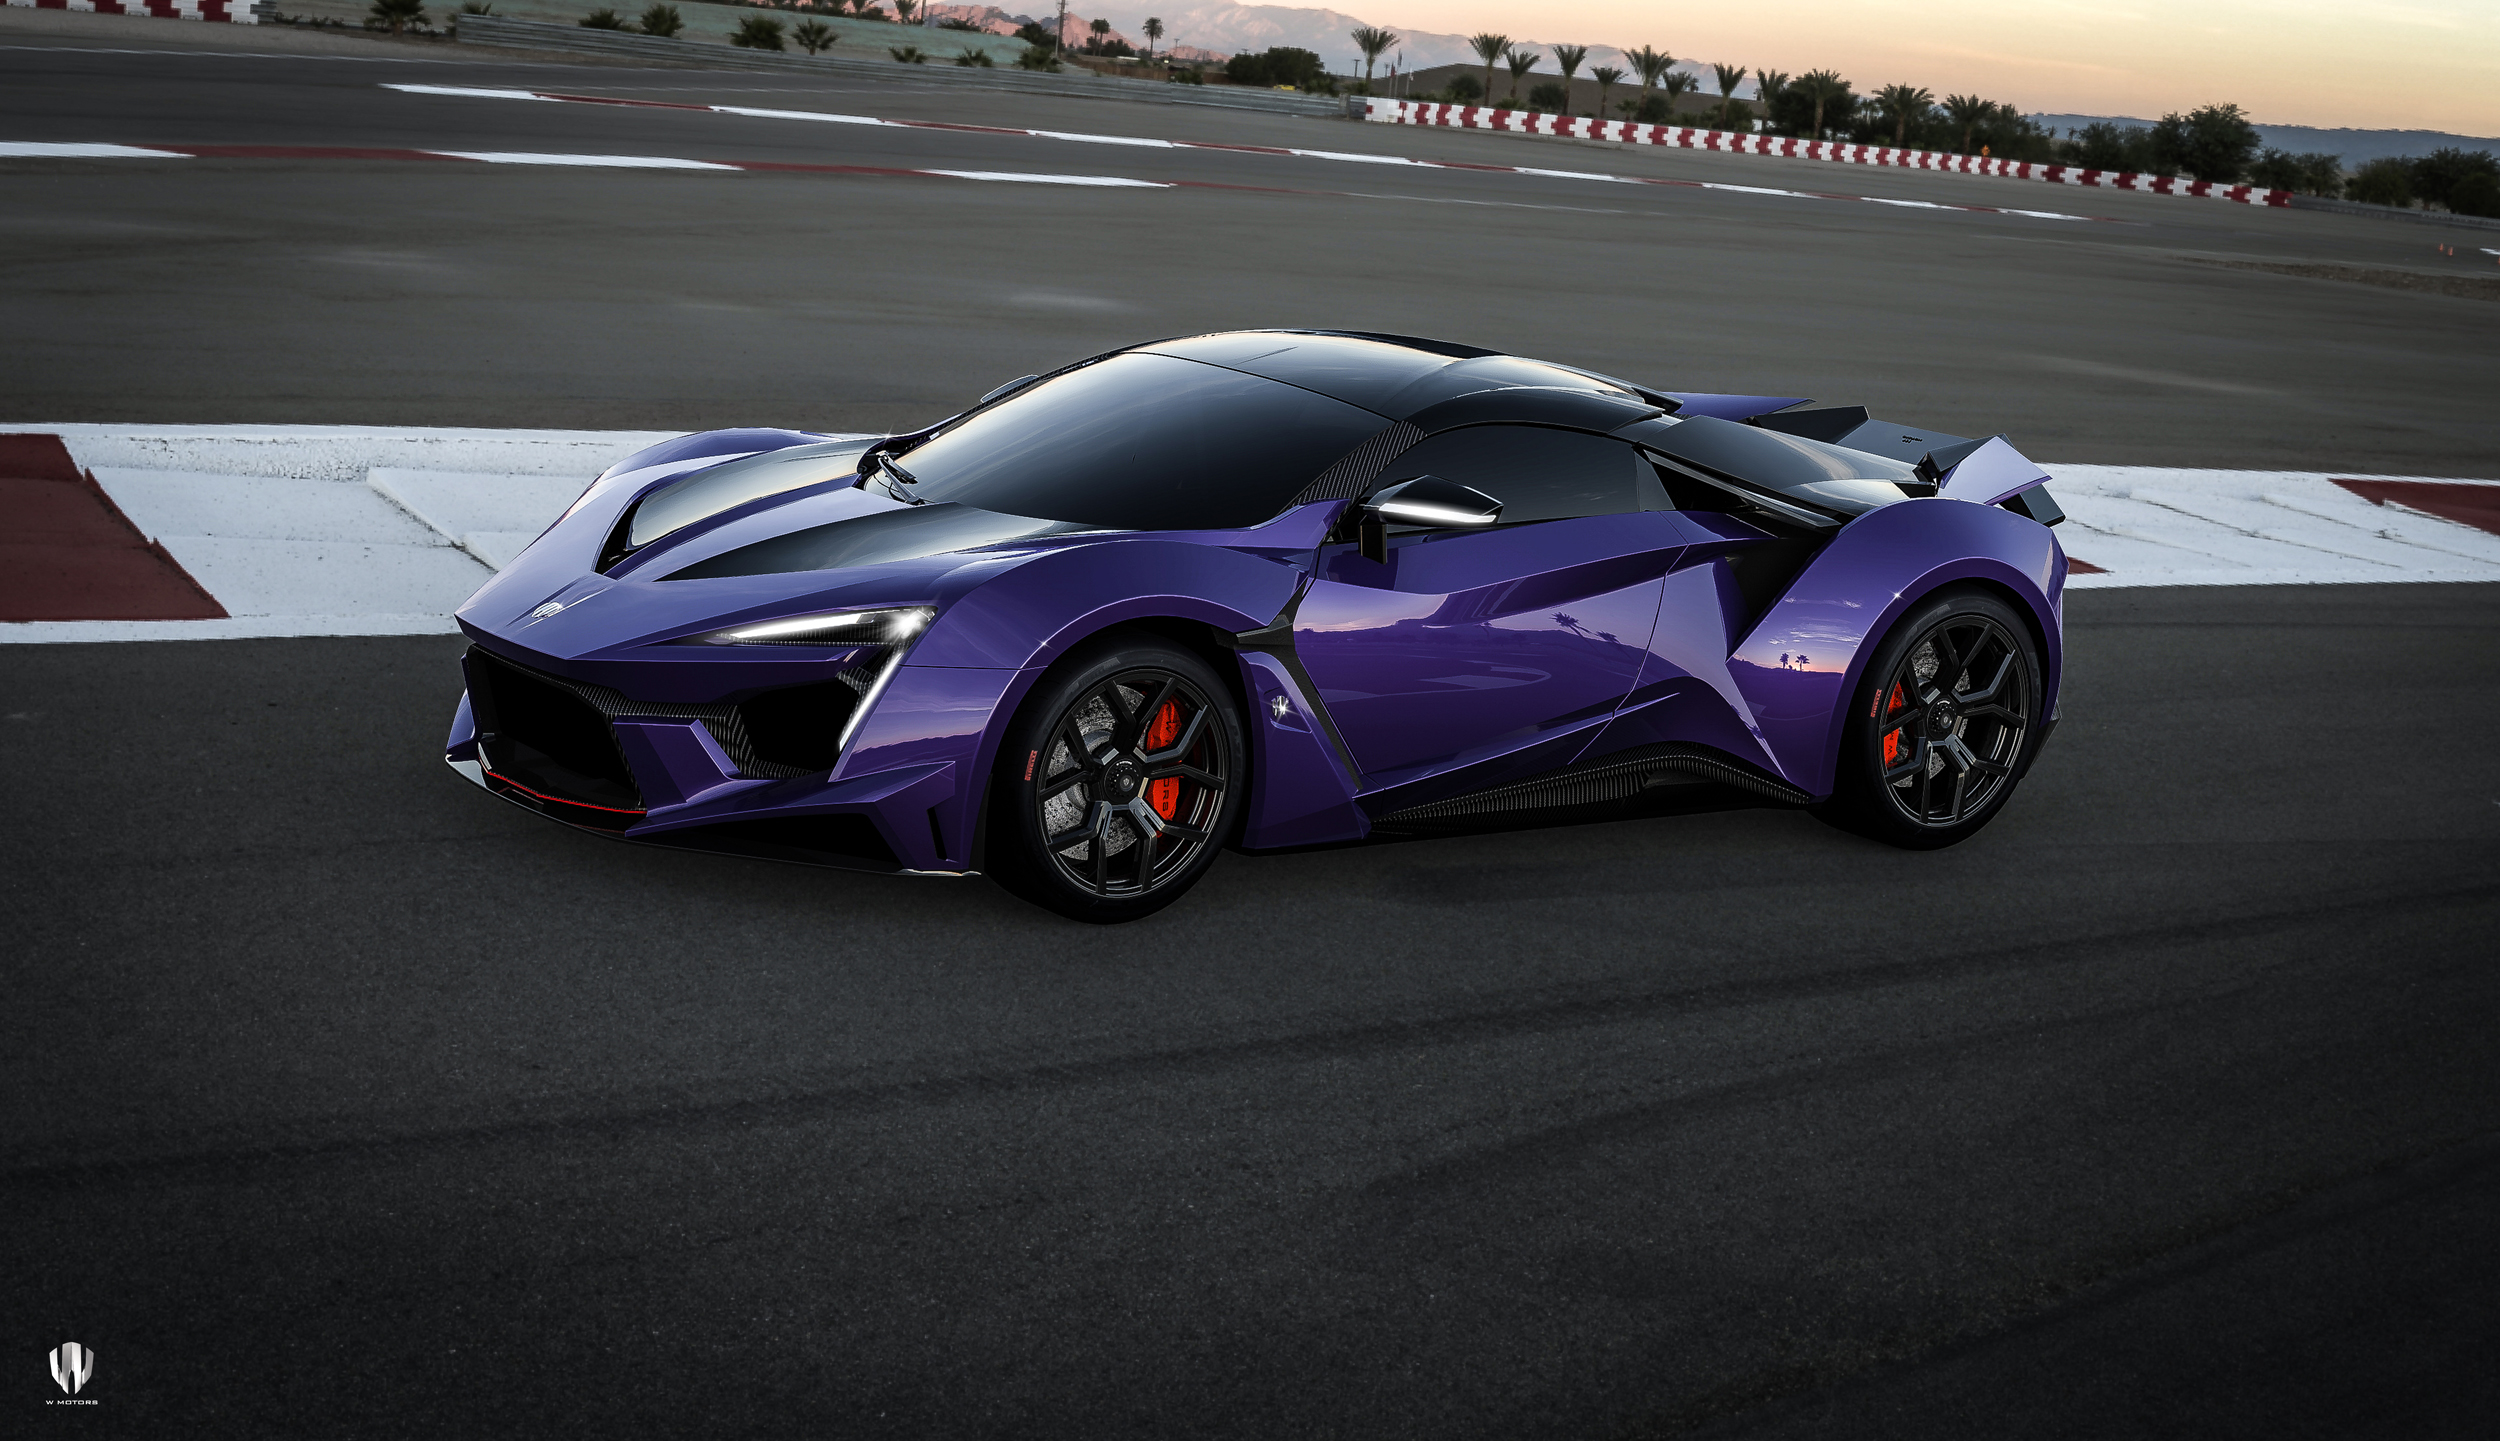 What Do You Think Of The New Fenyr Supersport: What Do You Think About The Fenyr SuperSport In Diamond